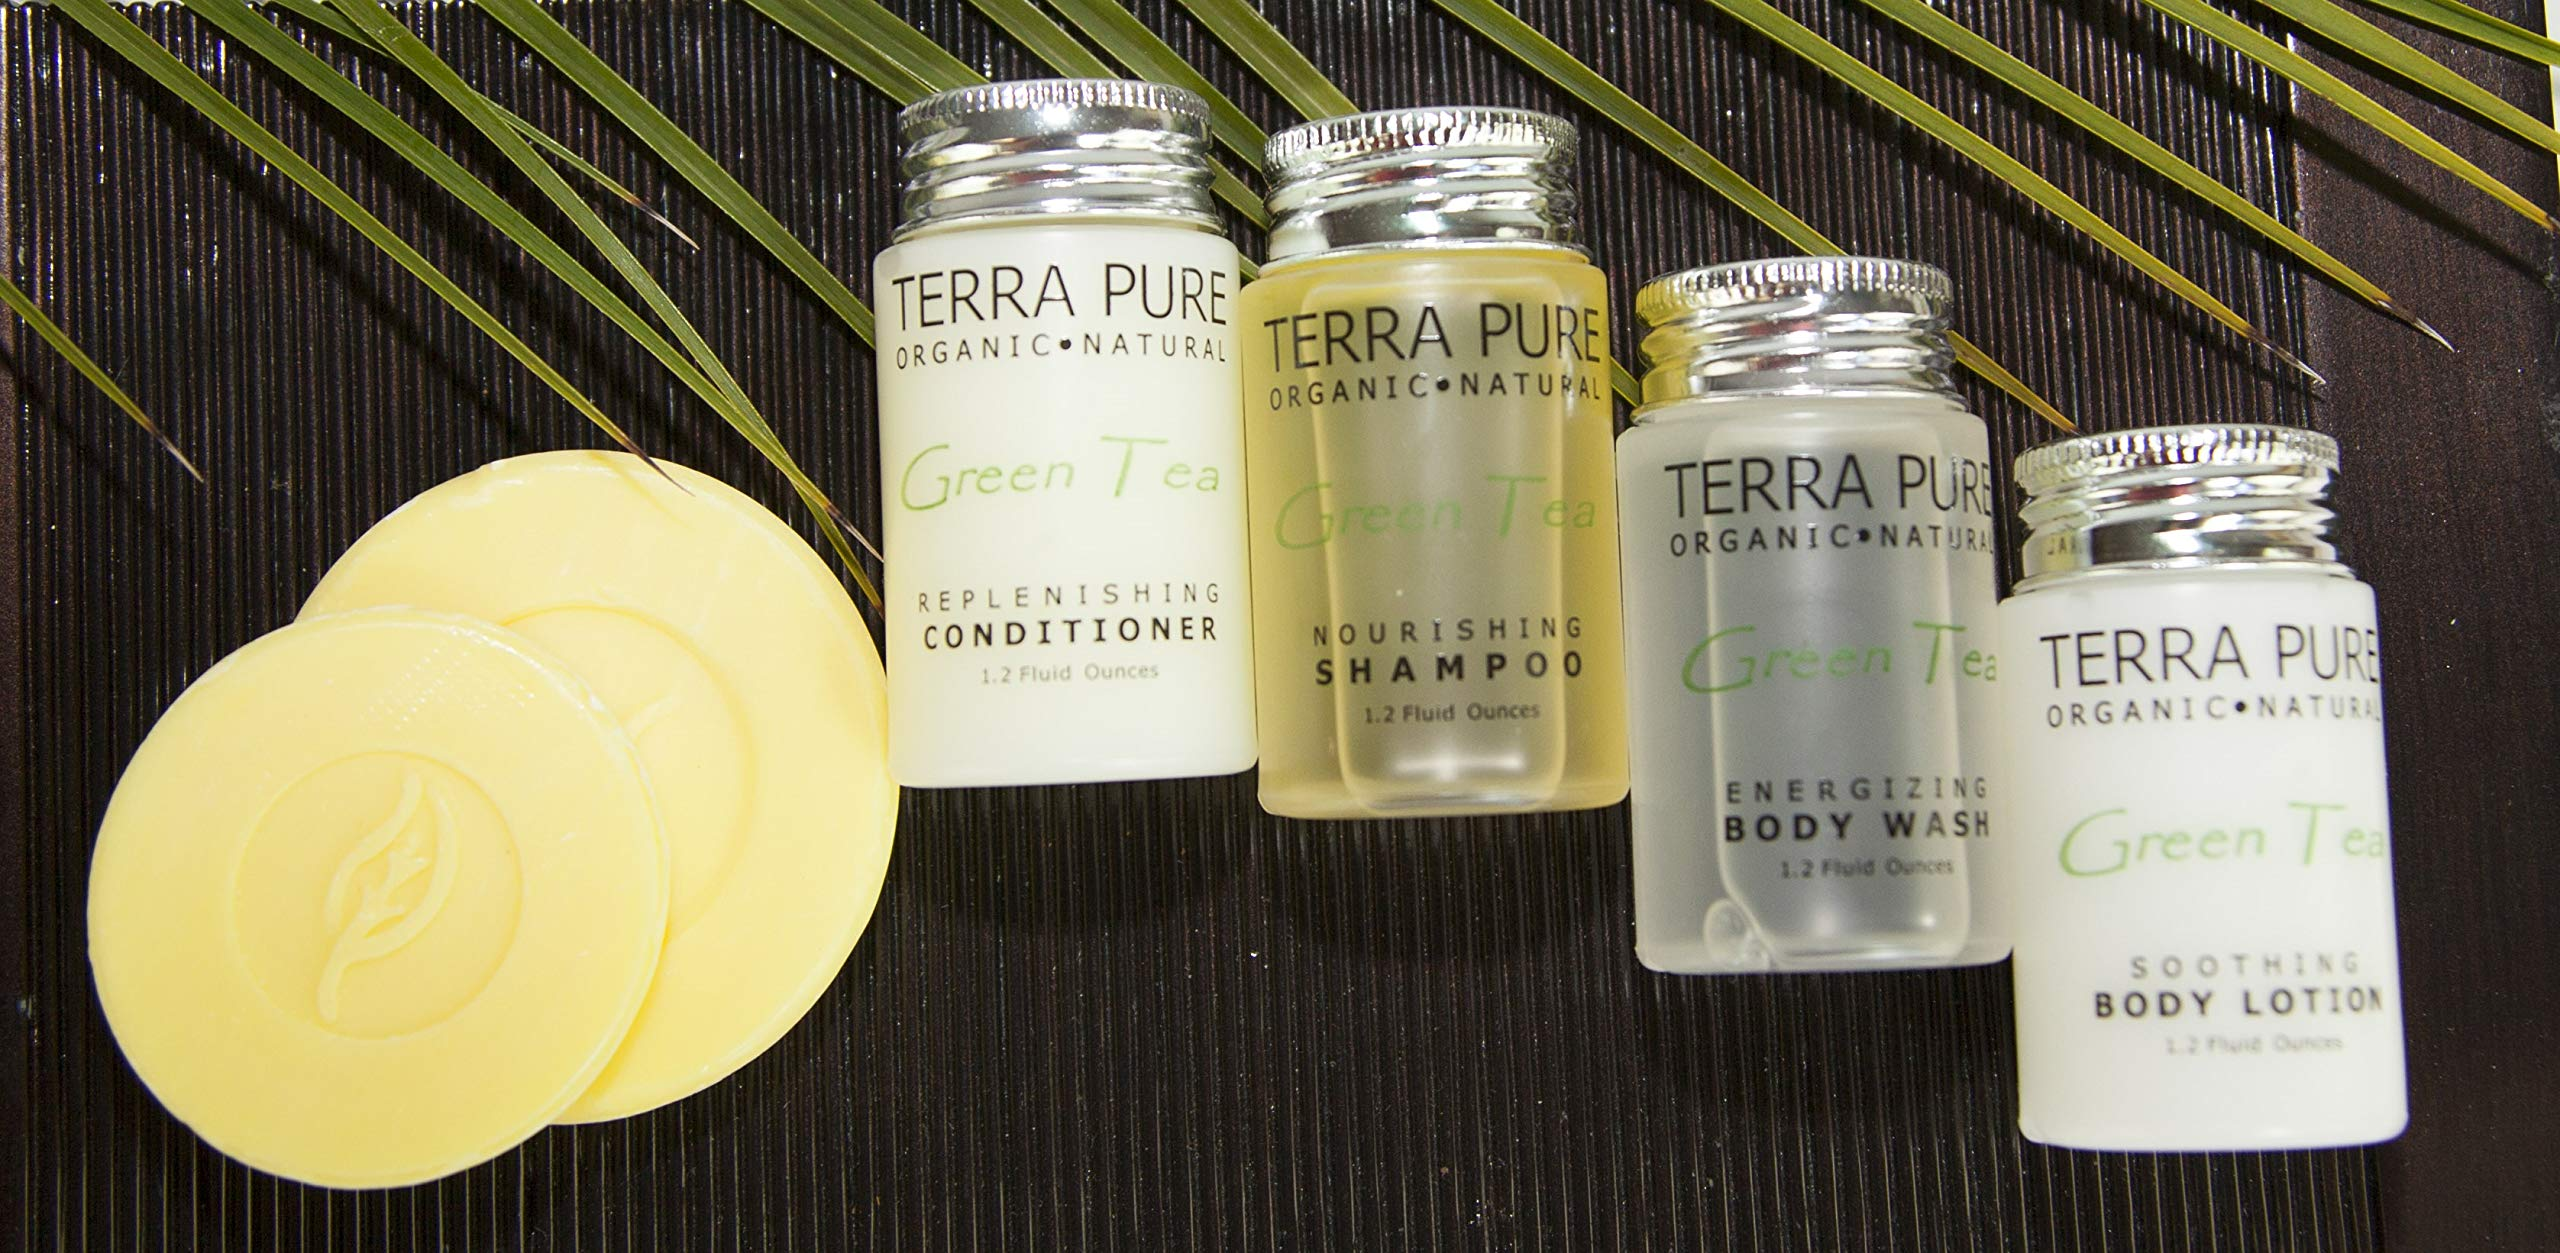 Terra Pure Bar Soap, Travel Size Hotel Amenities, 1.25 oz (Pack of 350) by Terra Pure (Image #5)